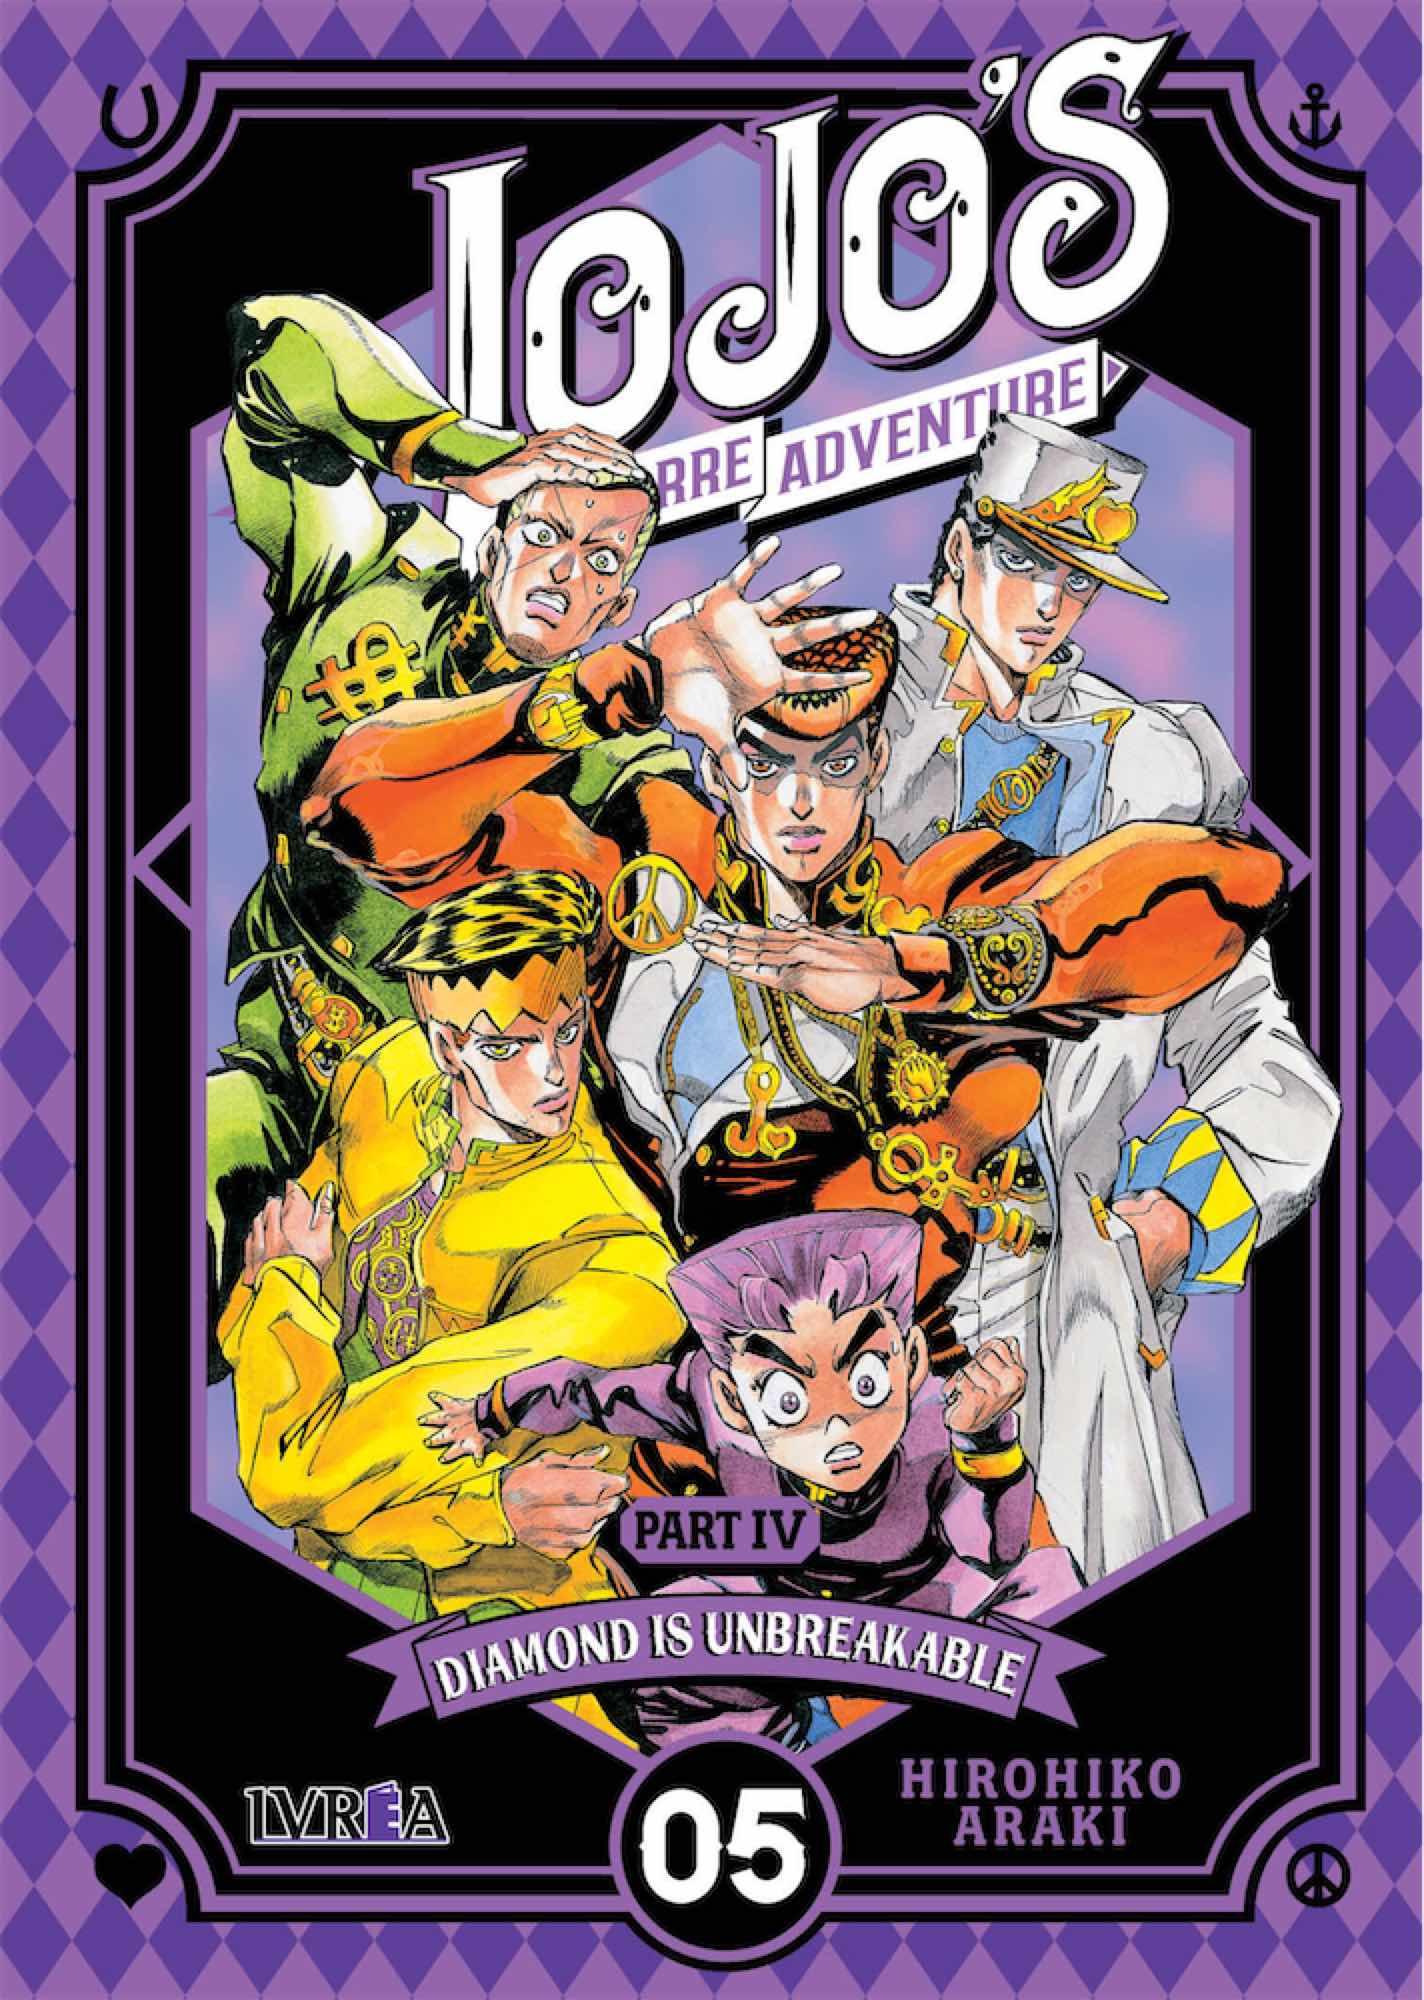 JOJO'S BIZARRE ADVENTURE PARTE 4: DIAMOND IS UNBREAKABLE 05